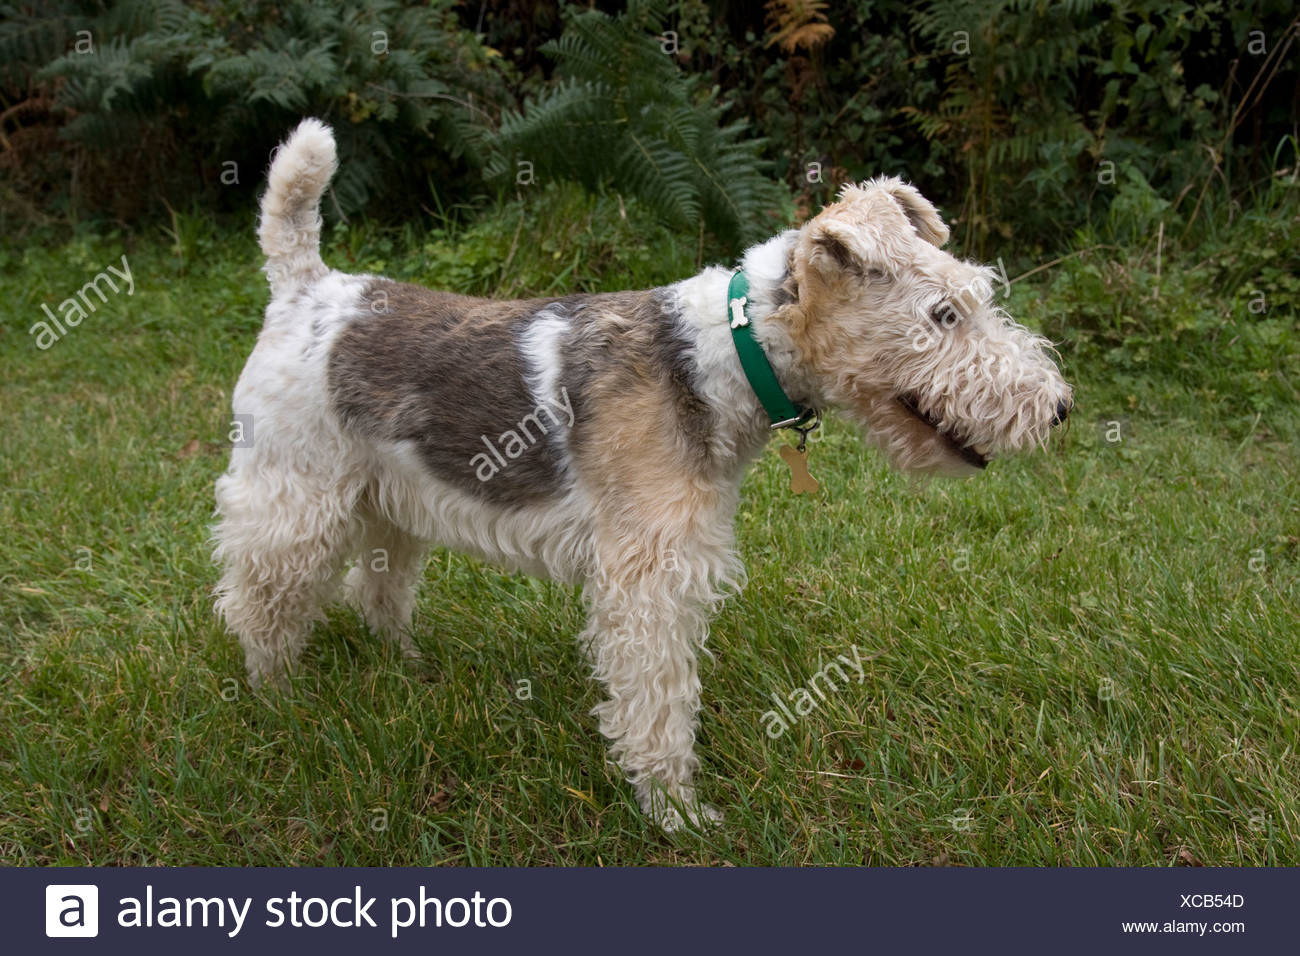 wire haired fox terrier Stock Photo: 282987277 - Alamy